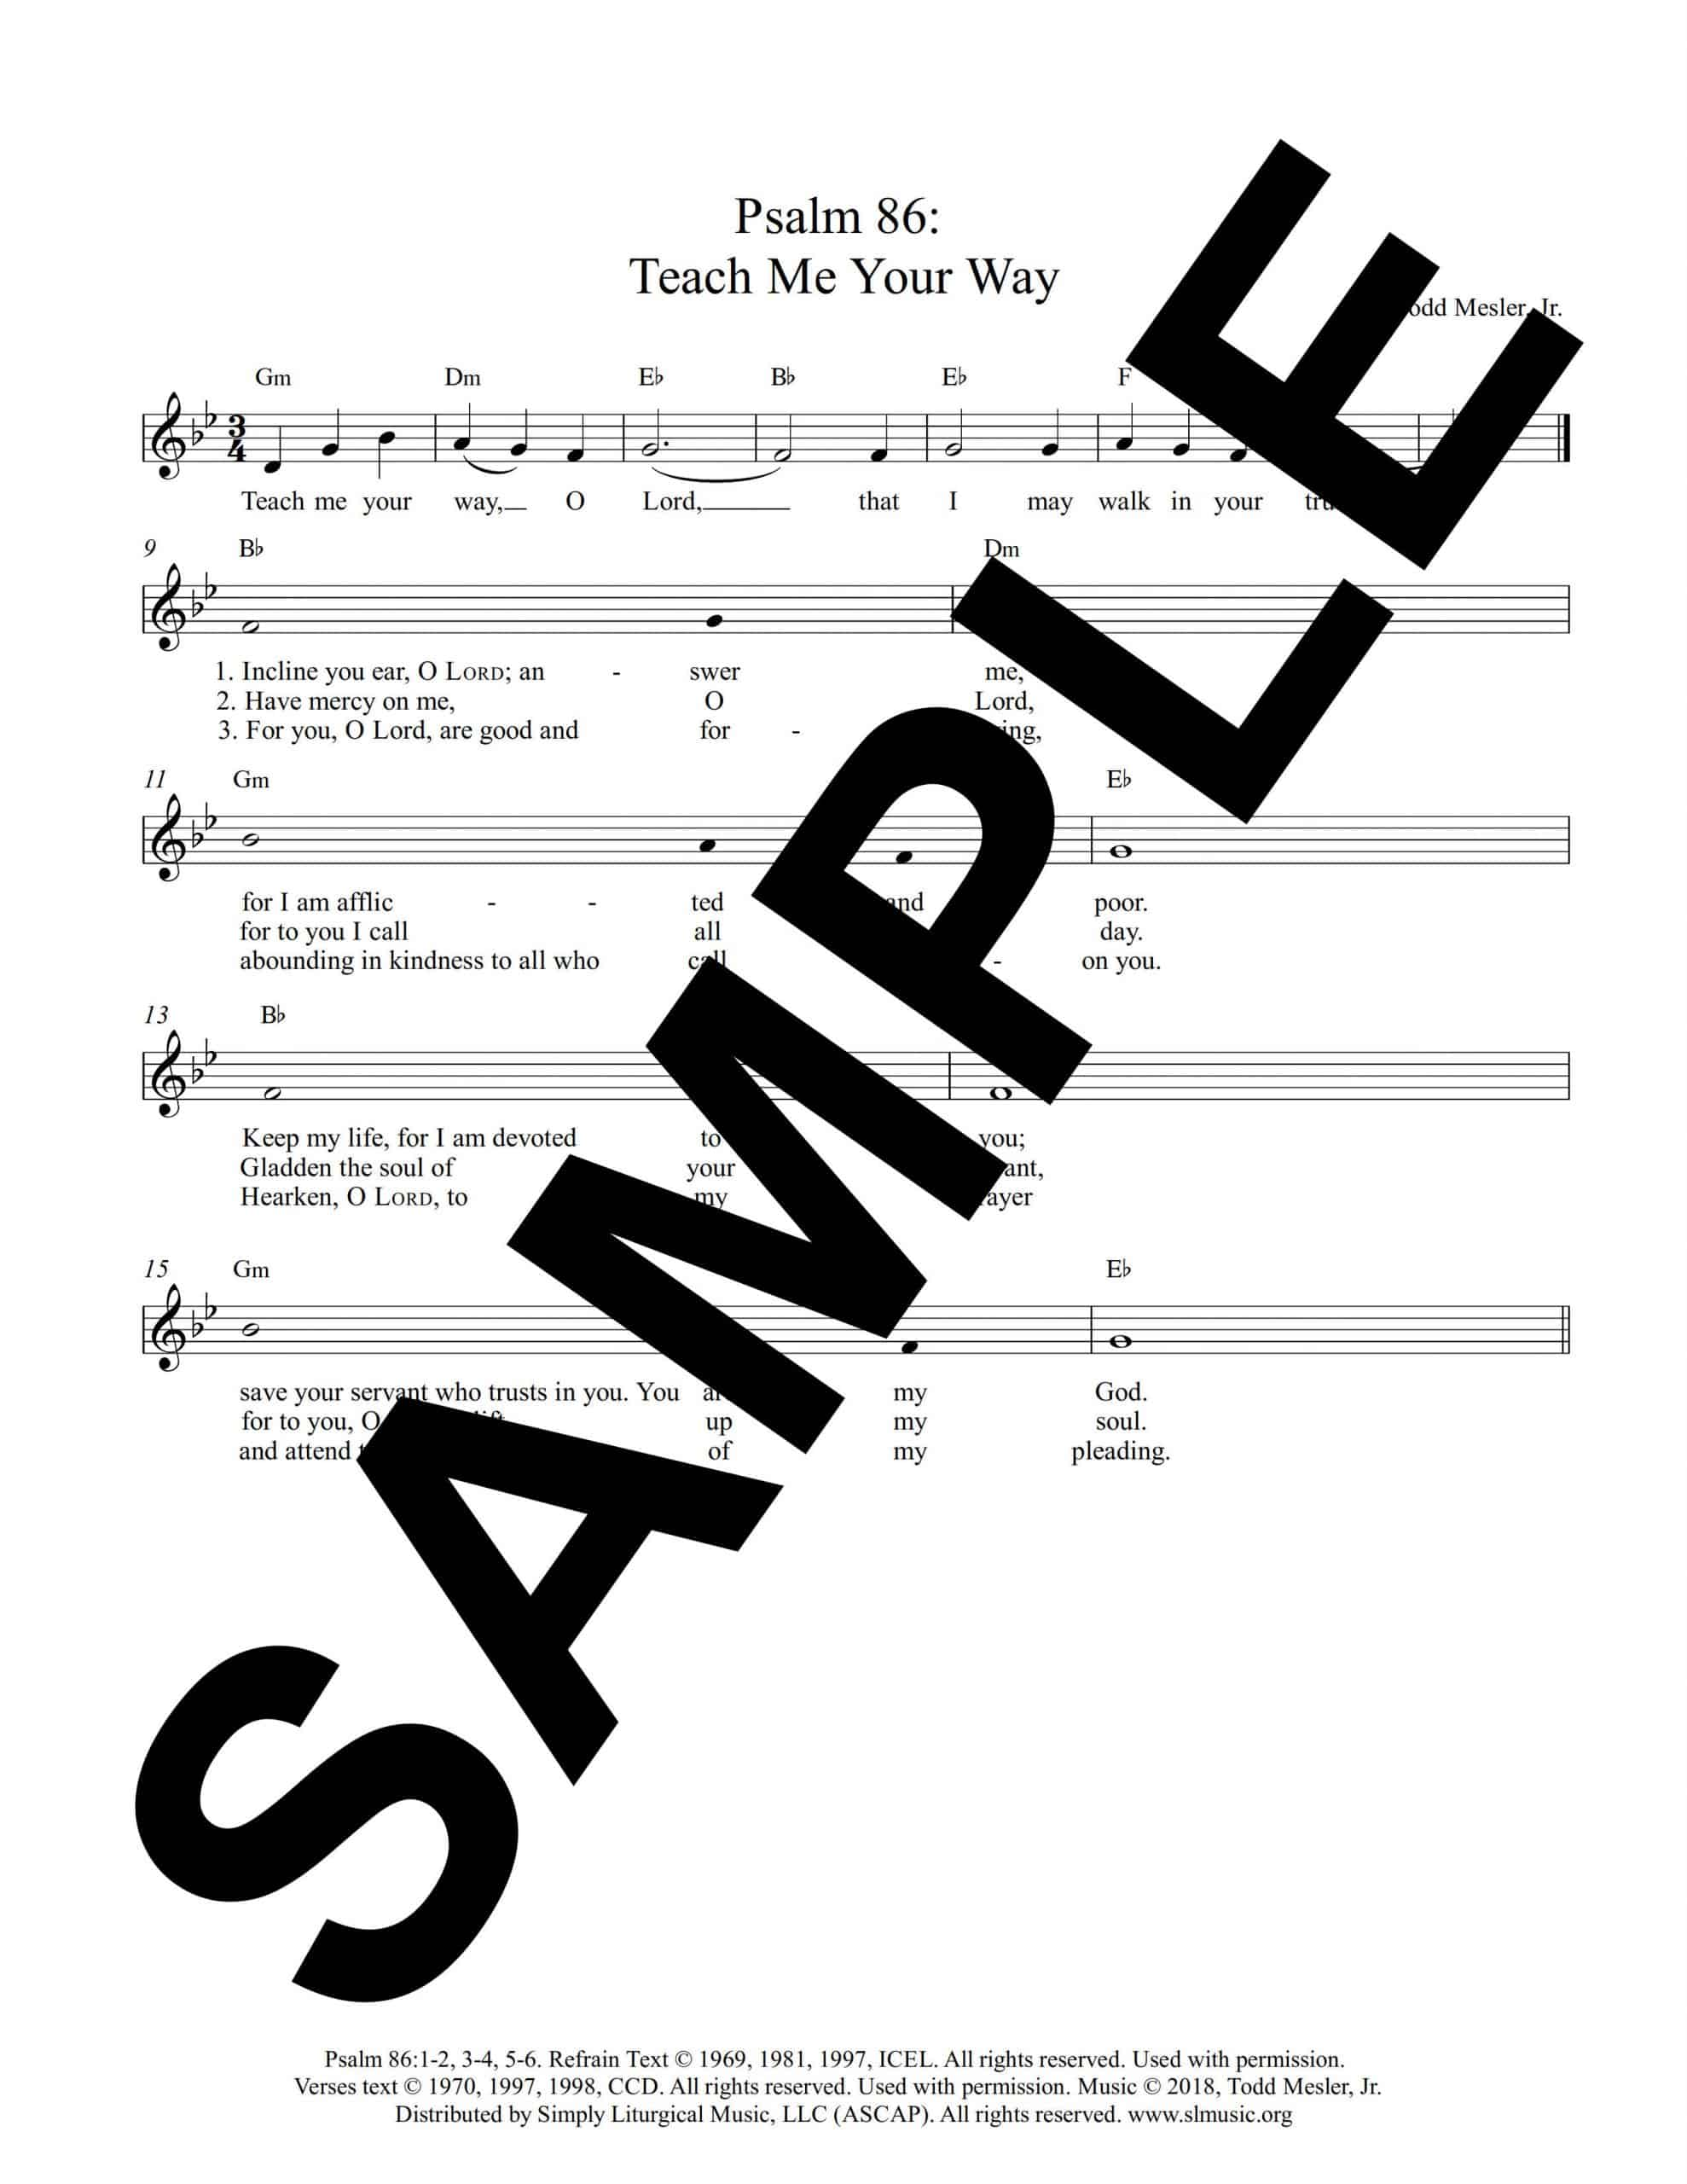 Saturday After Ash Wednesday Psalm 86 Teach Me Your Way Sample scaled